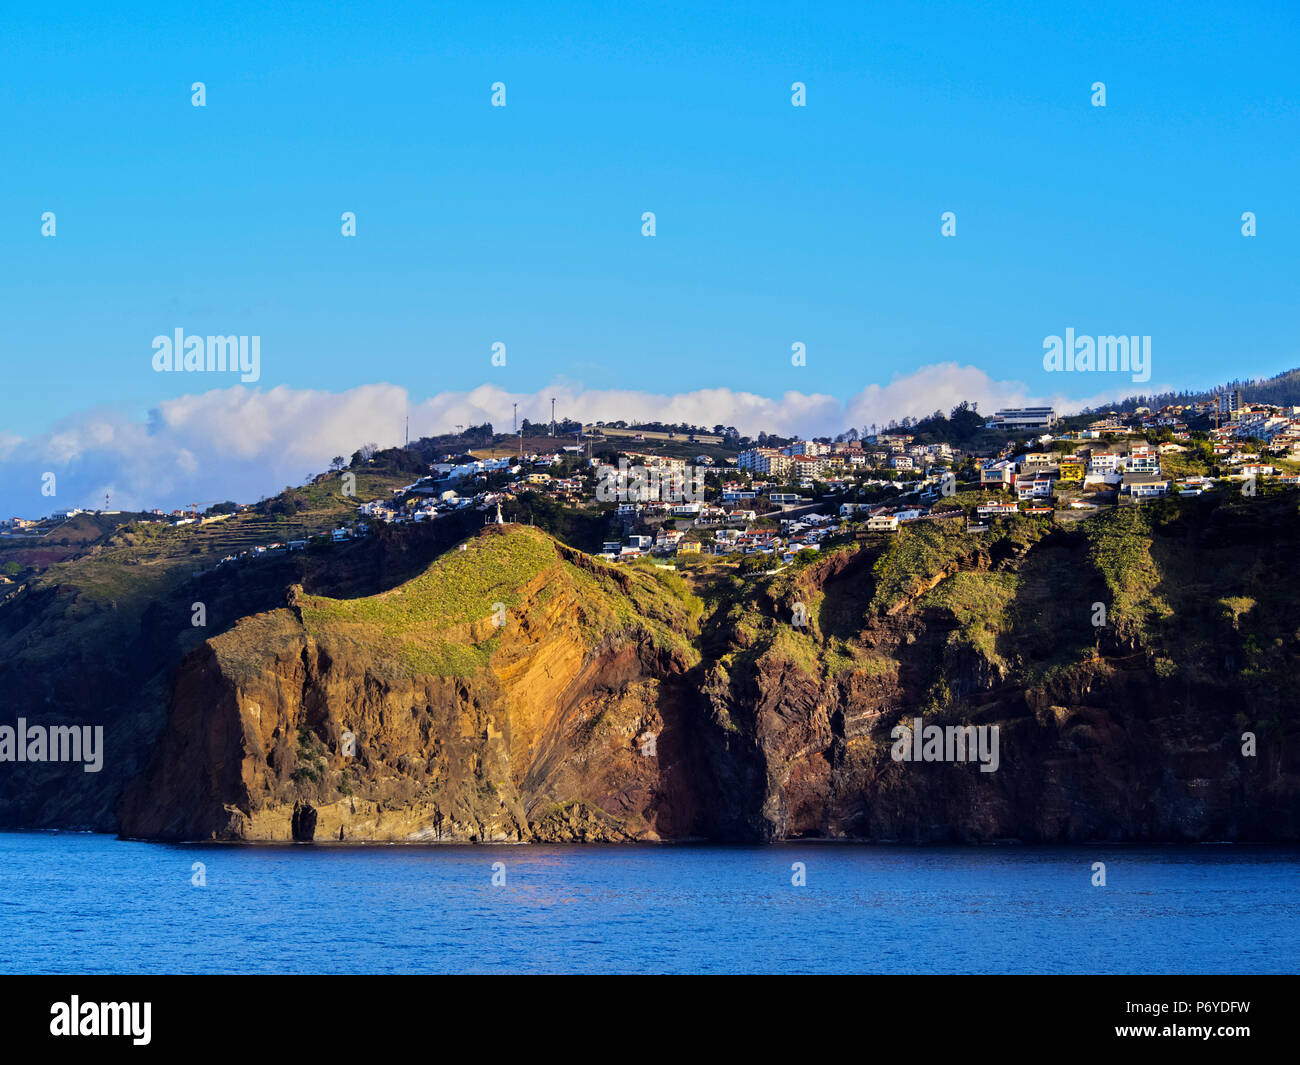 Portugal, Madeira, Ponta de Garajau, Coast of the island. - Stock Image